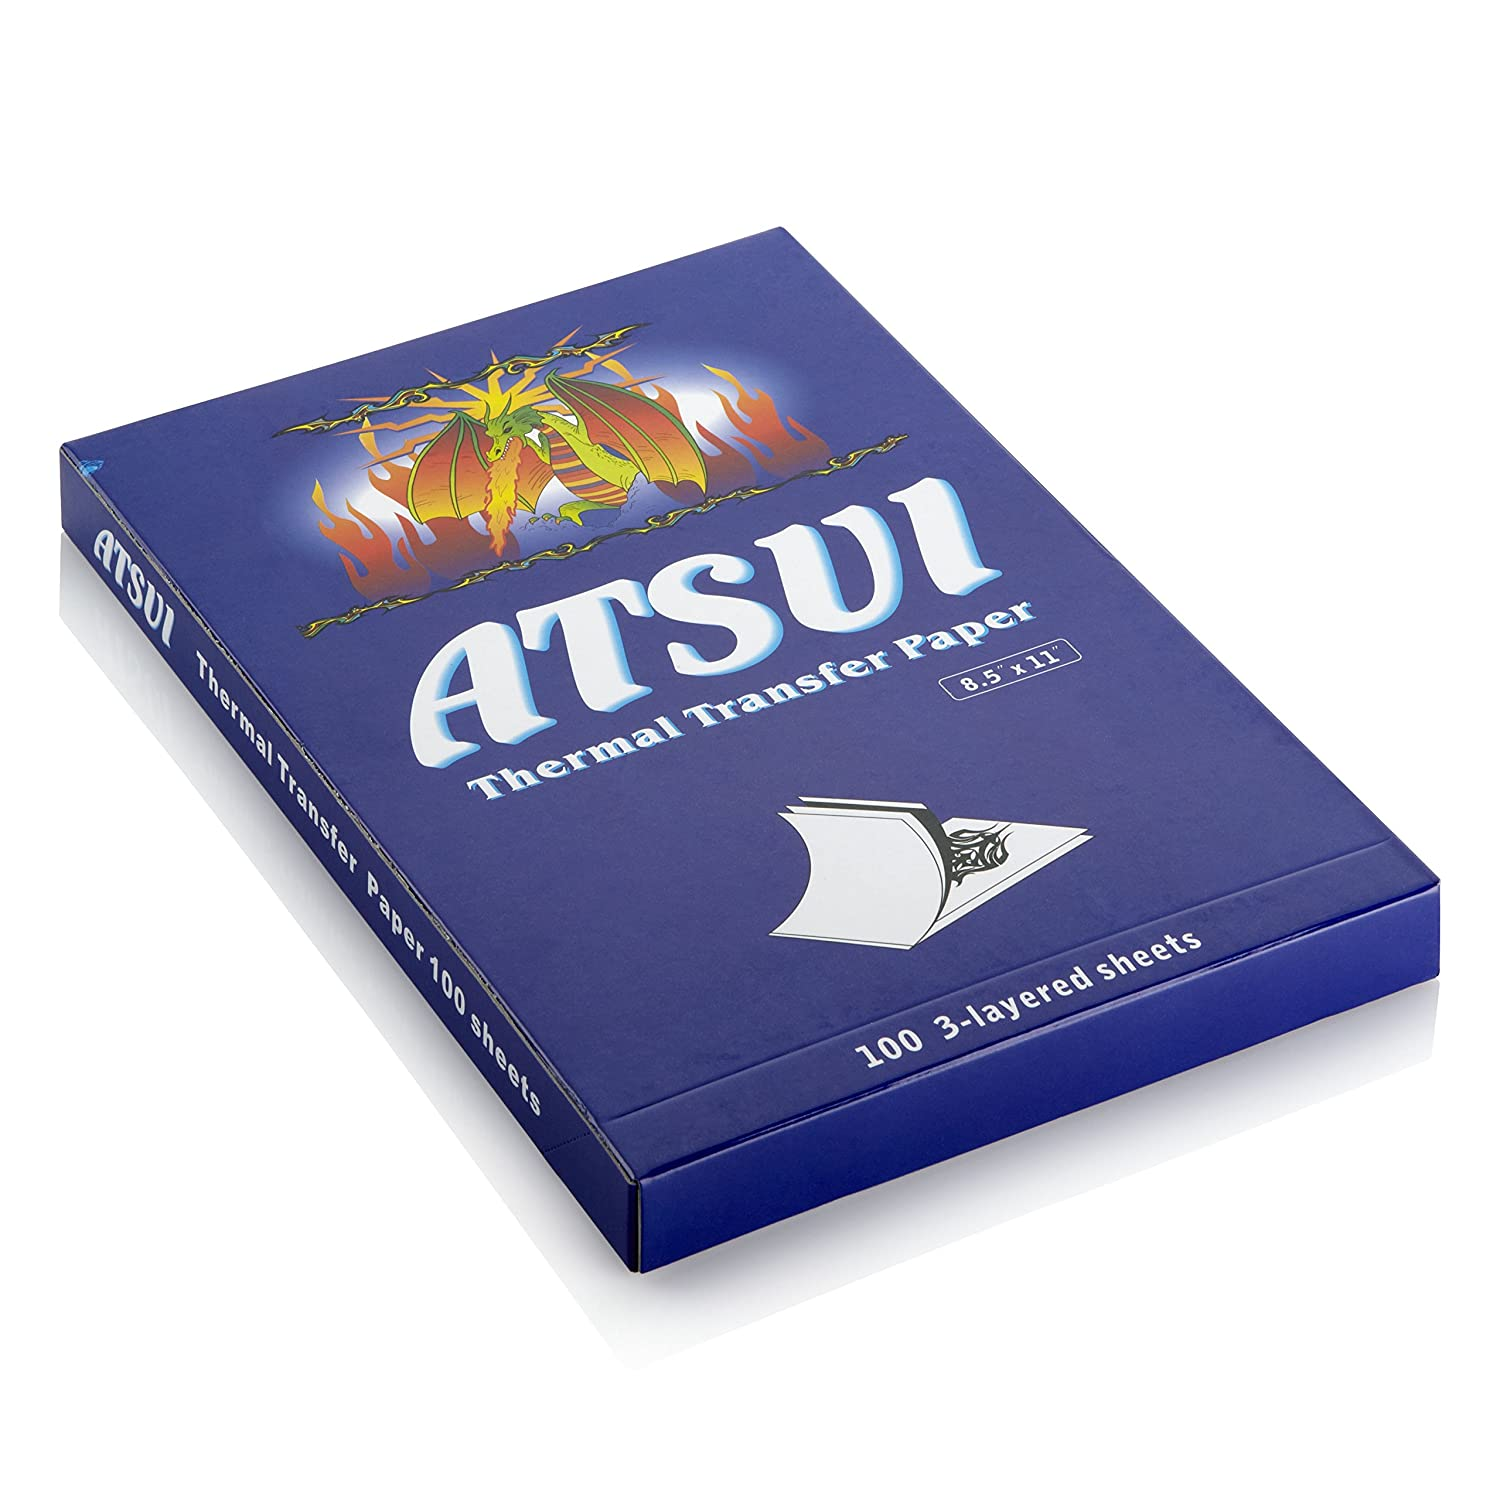 Atsui Thermal Copier Paper - Box of 20 or 100 Sheets - Designed for Tattooing (Box of 100 Sheets)